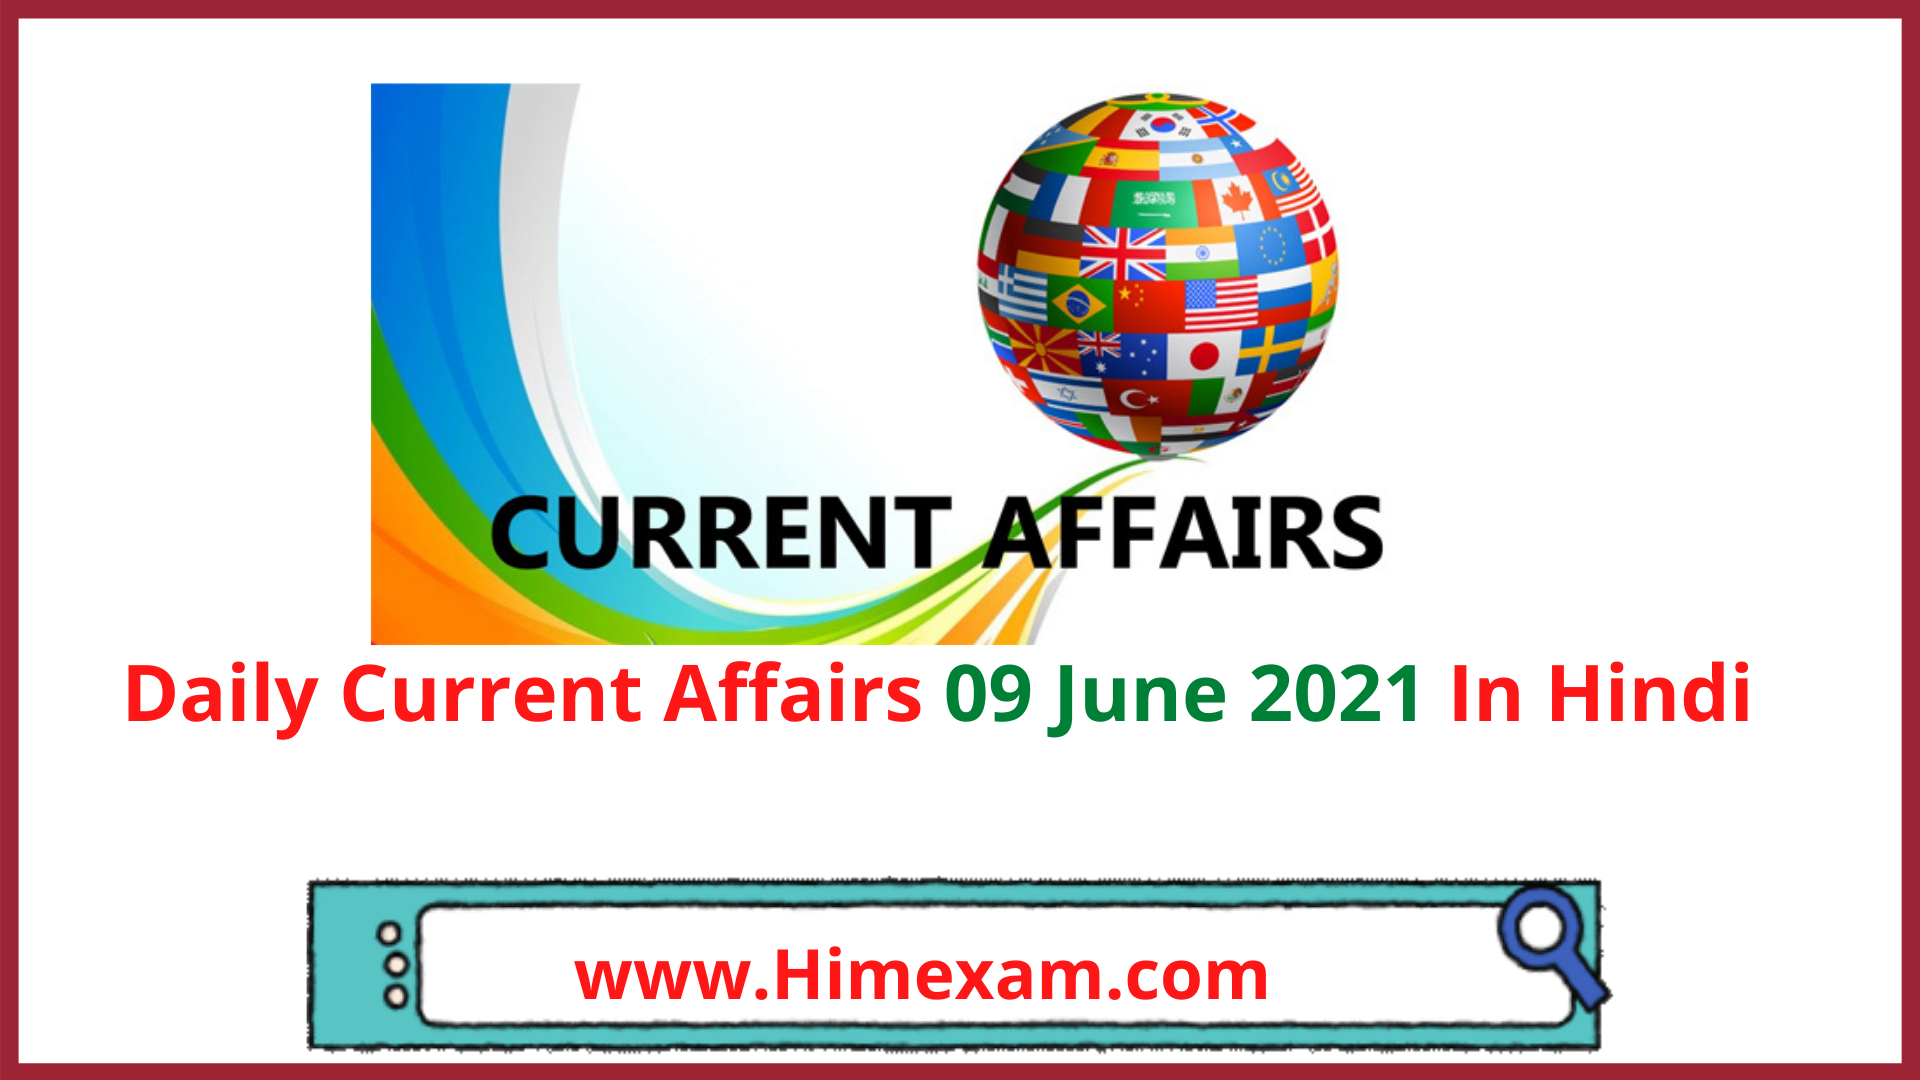 Daily Current Affairs 09 June 2021 In Hindi